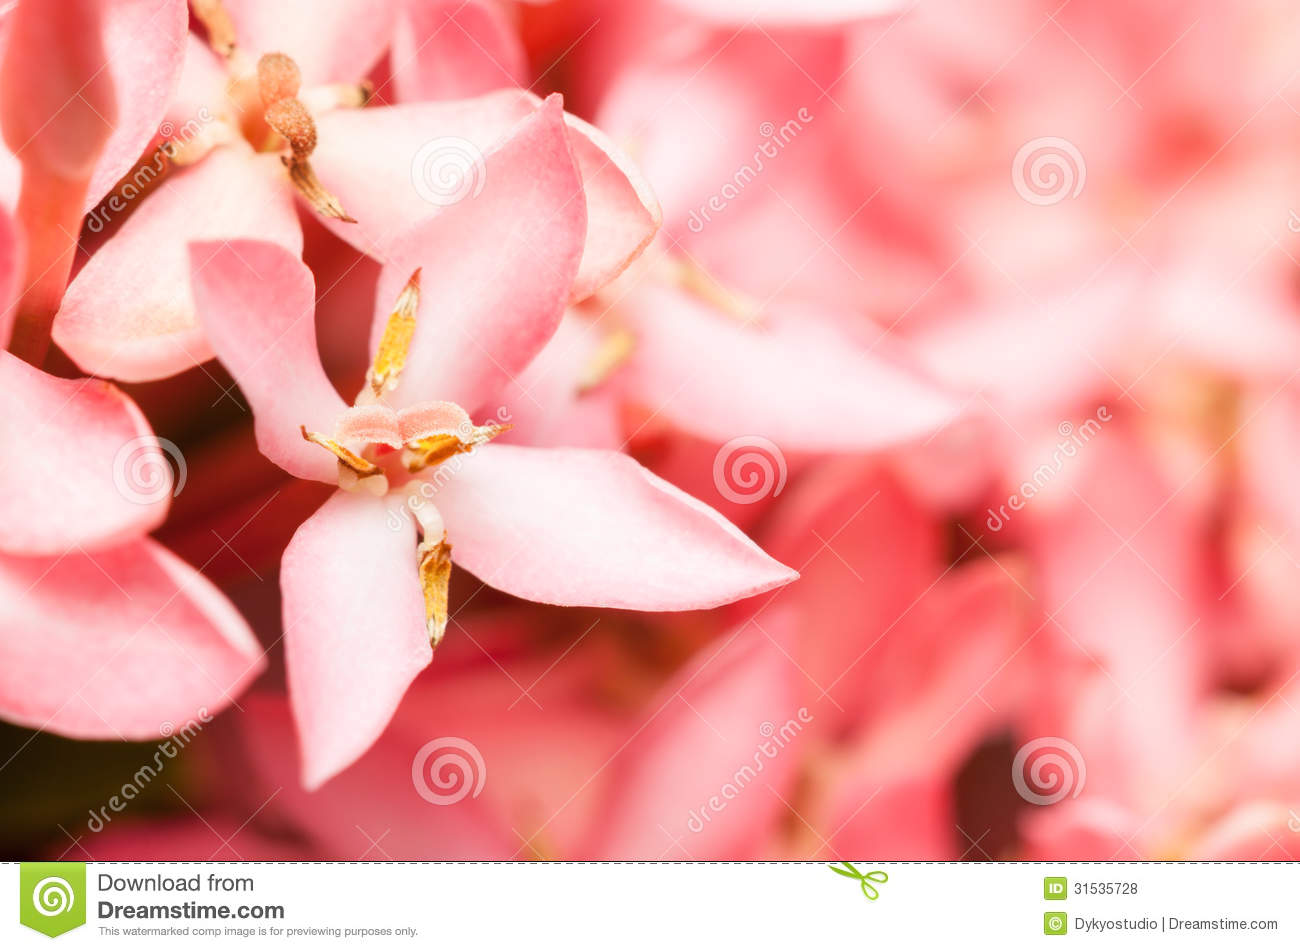 Pink jasmine flowers 17 widescreen wallpaper hdflowerwallpaper pink jasmine flowers free wallpaper izmirmasajfo